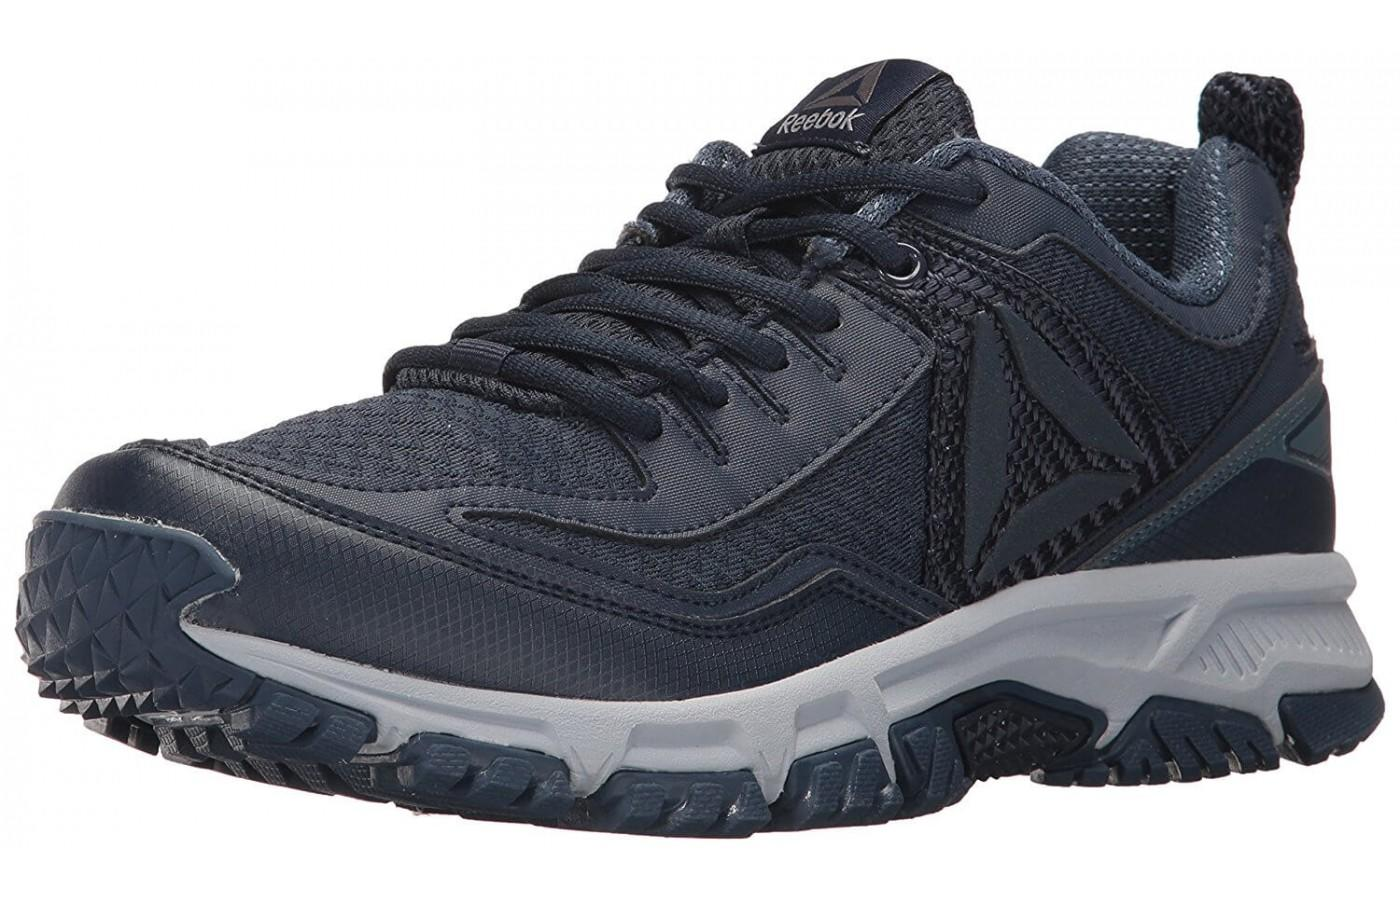 dcea9083e69 Reebok Ridgerider Trail 2.0 is a trail shoe with prominent outsole lugs ...